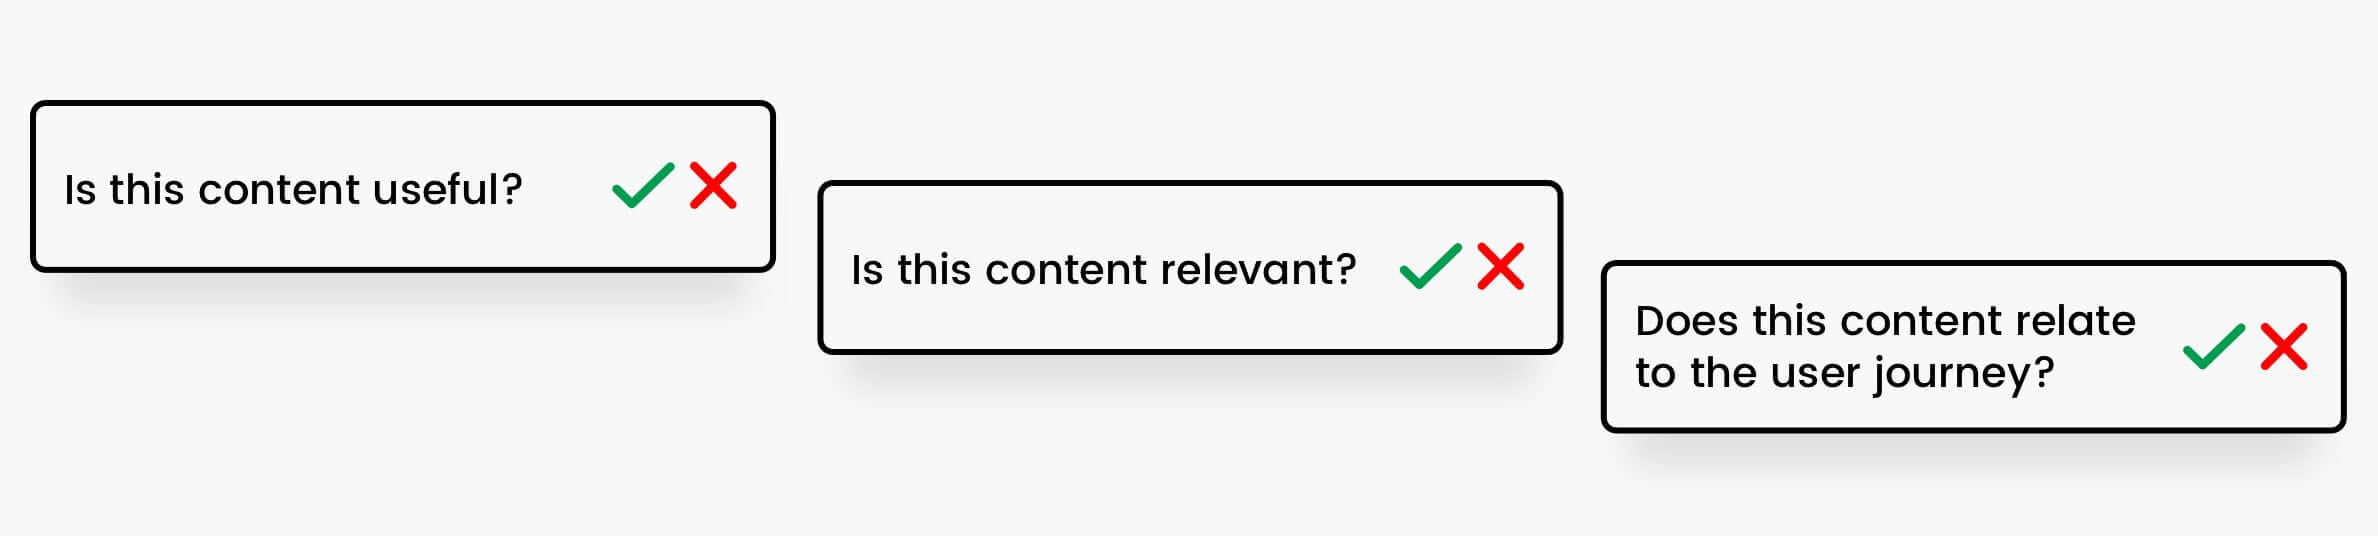 A straightforward flowchart for defining whether to keep content